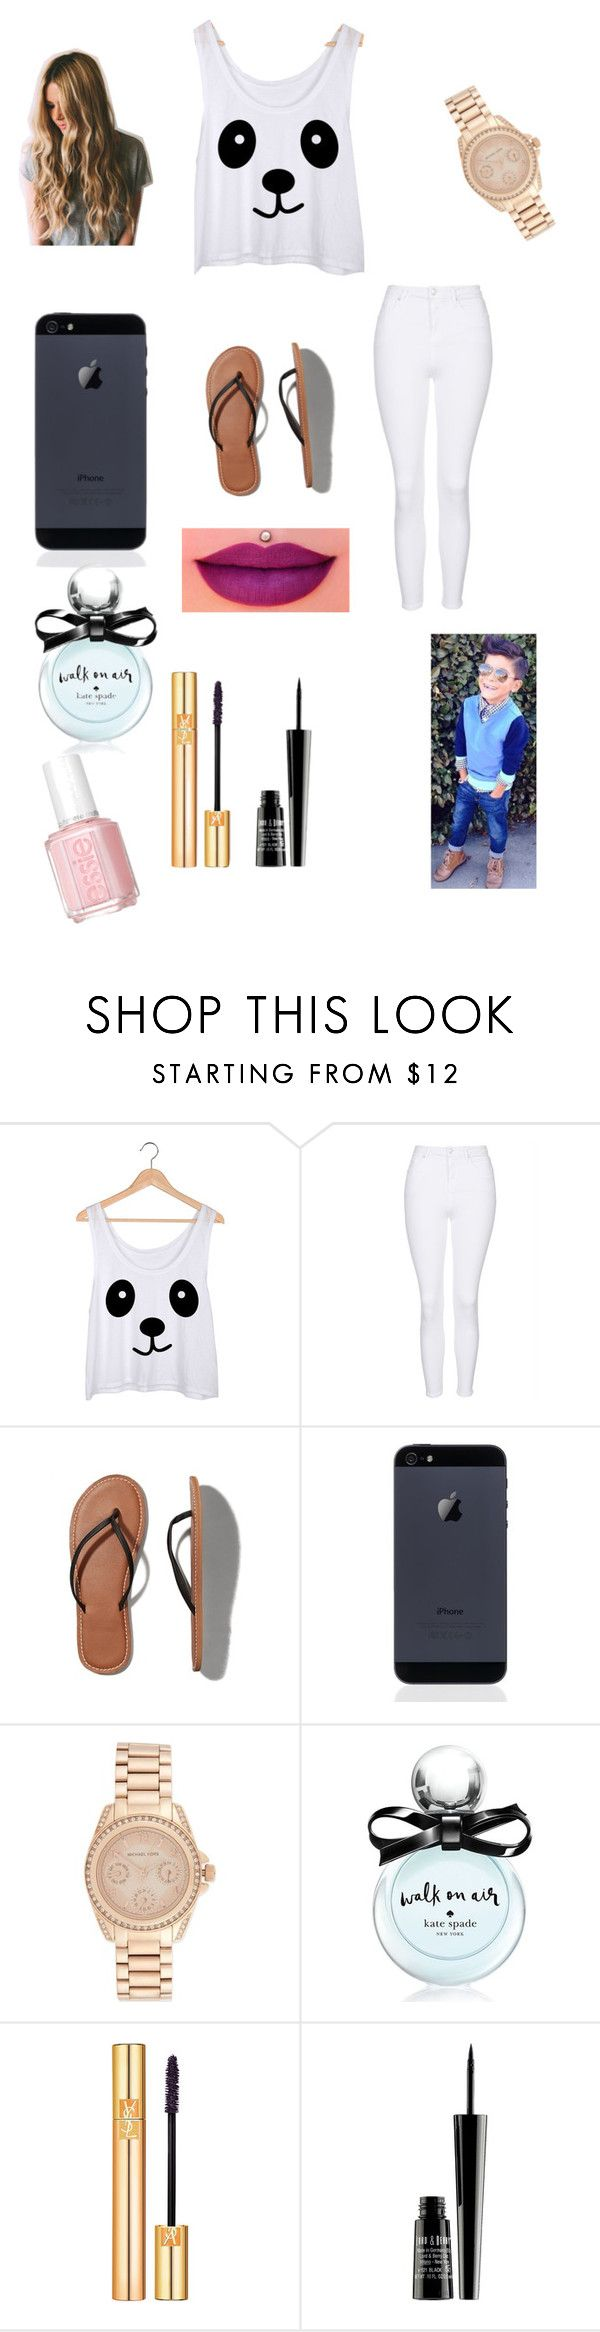 """Building a fort with Ryan for all the kids"" by bellzellz ❤ liked on Polyvore featuring Topshop, Abercrombie & Fitch, Michael Kors, Anastasia Beverly Hills, Kate Spade, Yves Saint Laurent, Lord & Berry and Essie"